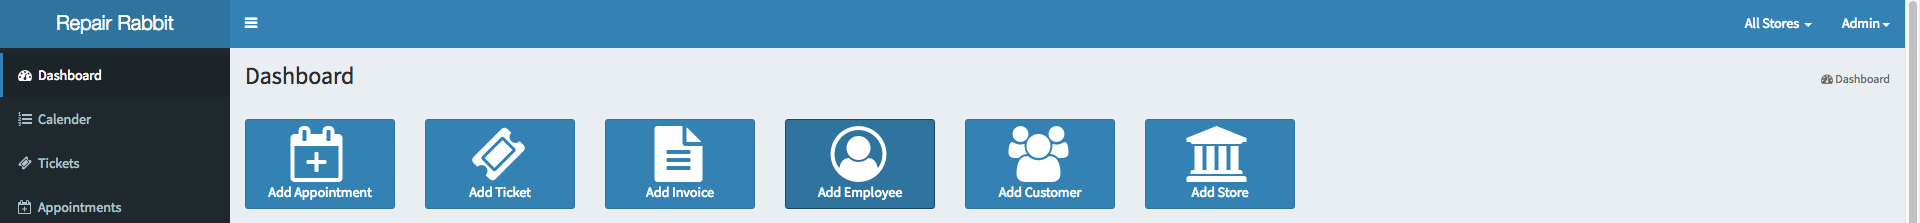 Add appointments tickets invoice employee customer store easily